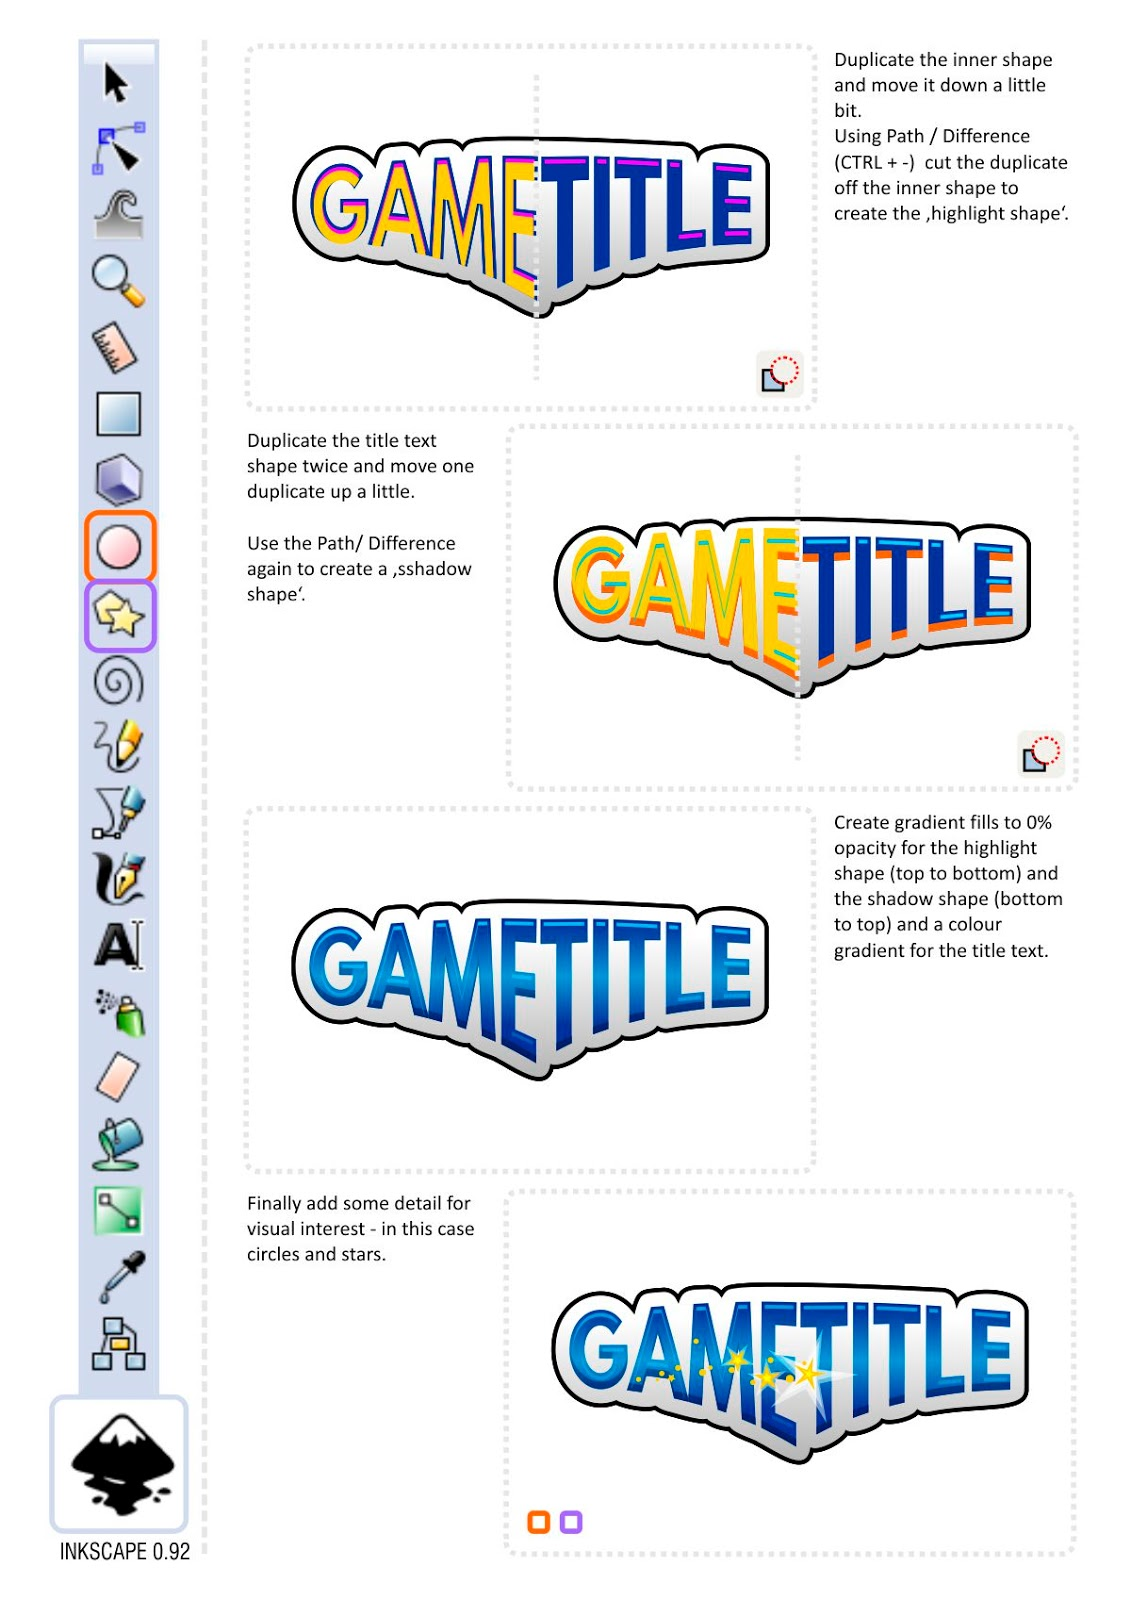 Creating a game title with envelope deformation in inkscape